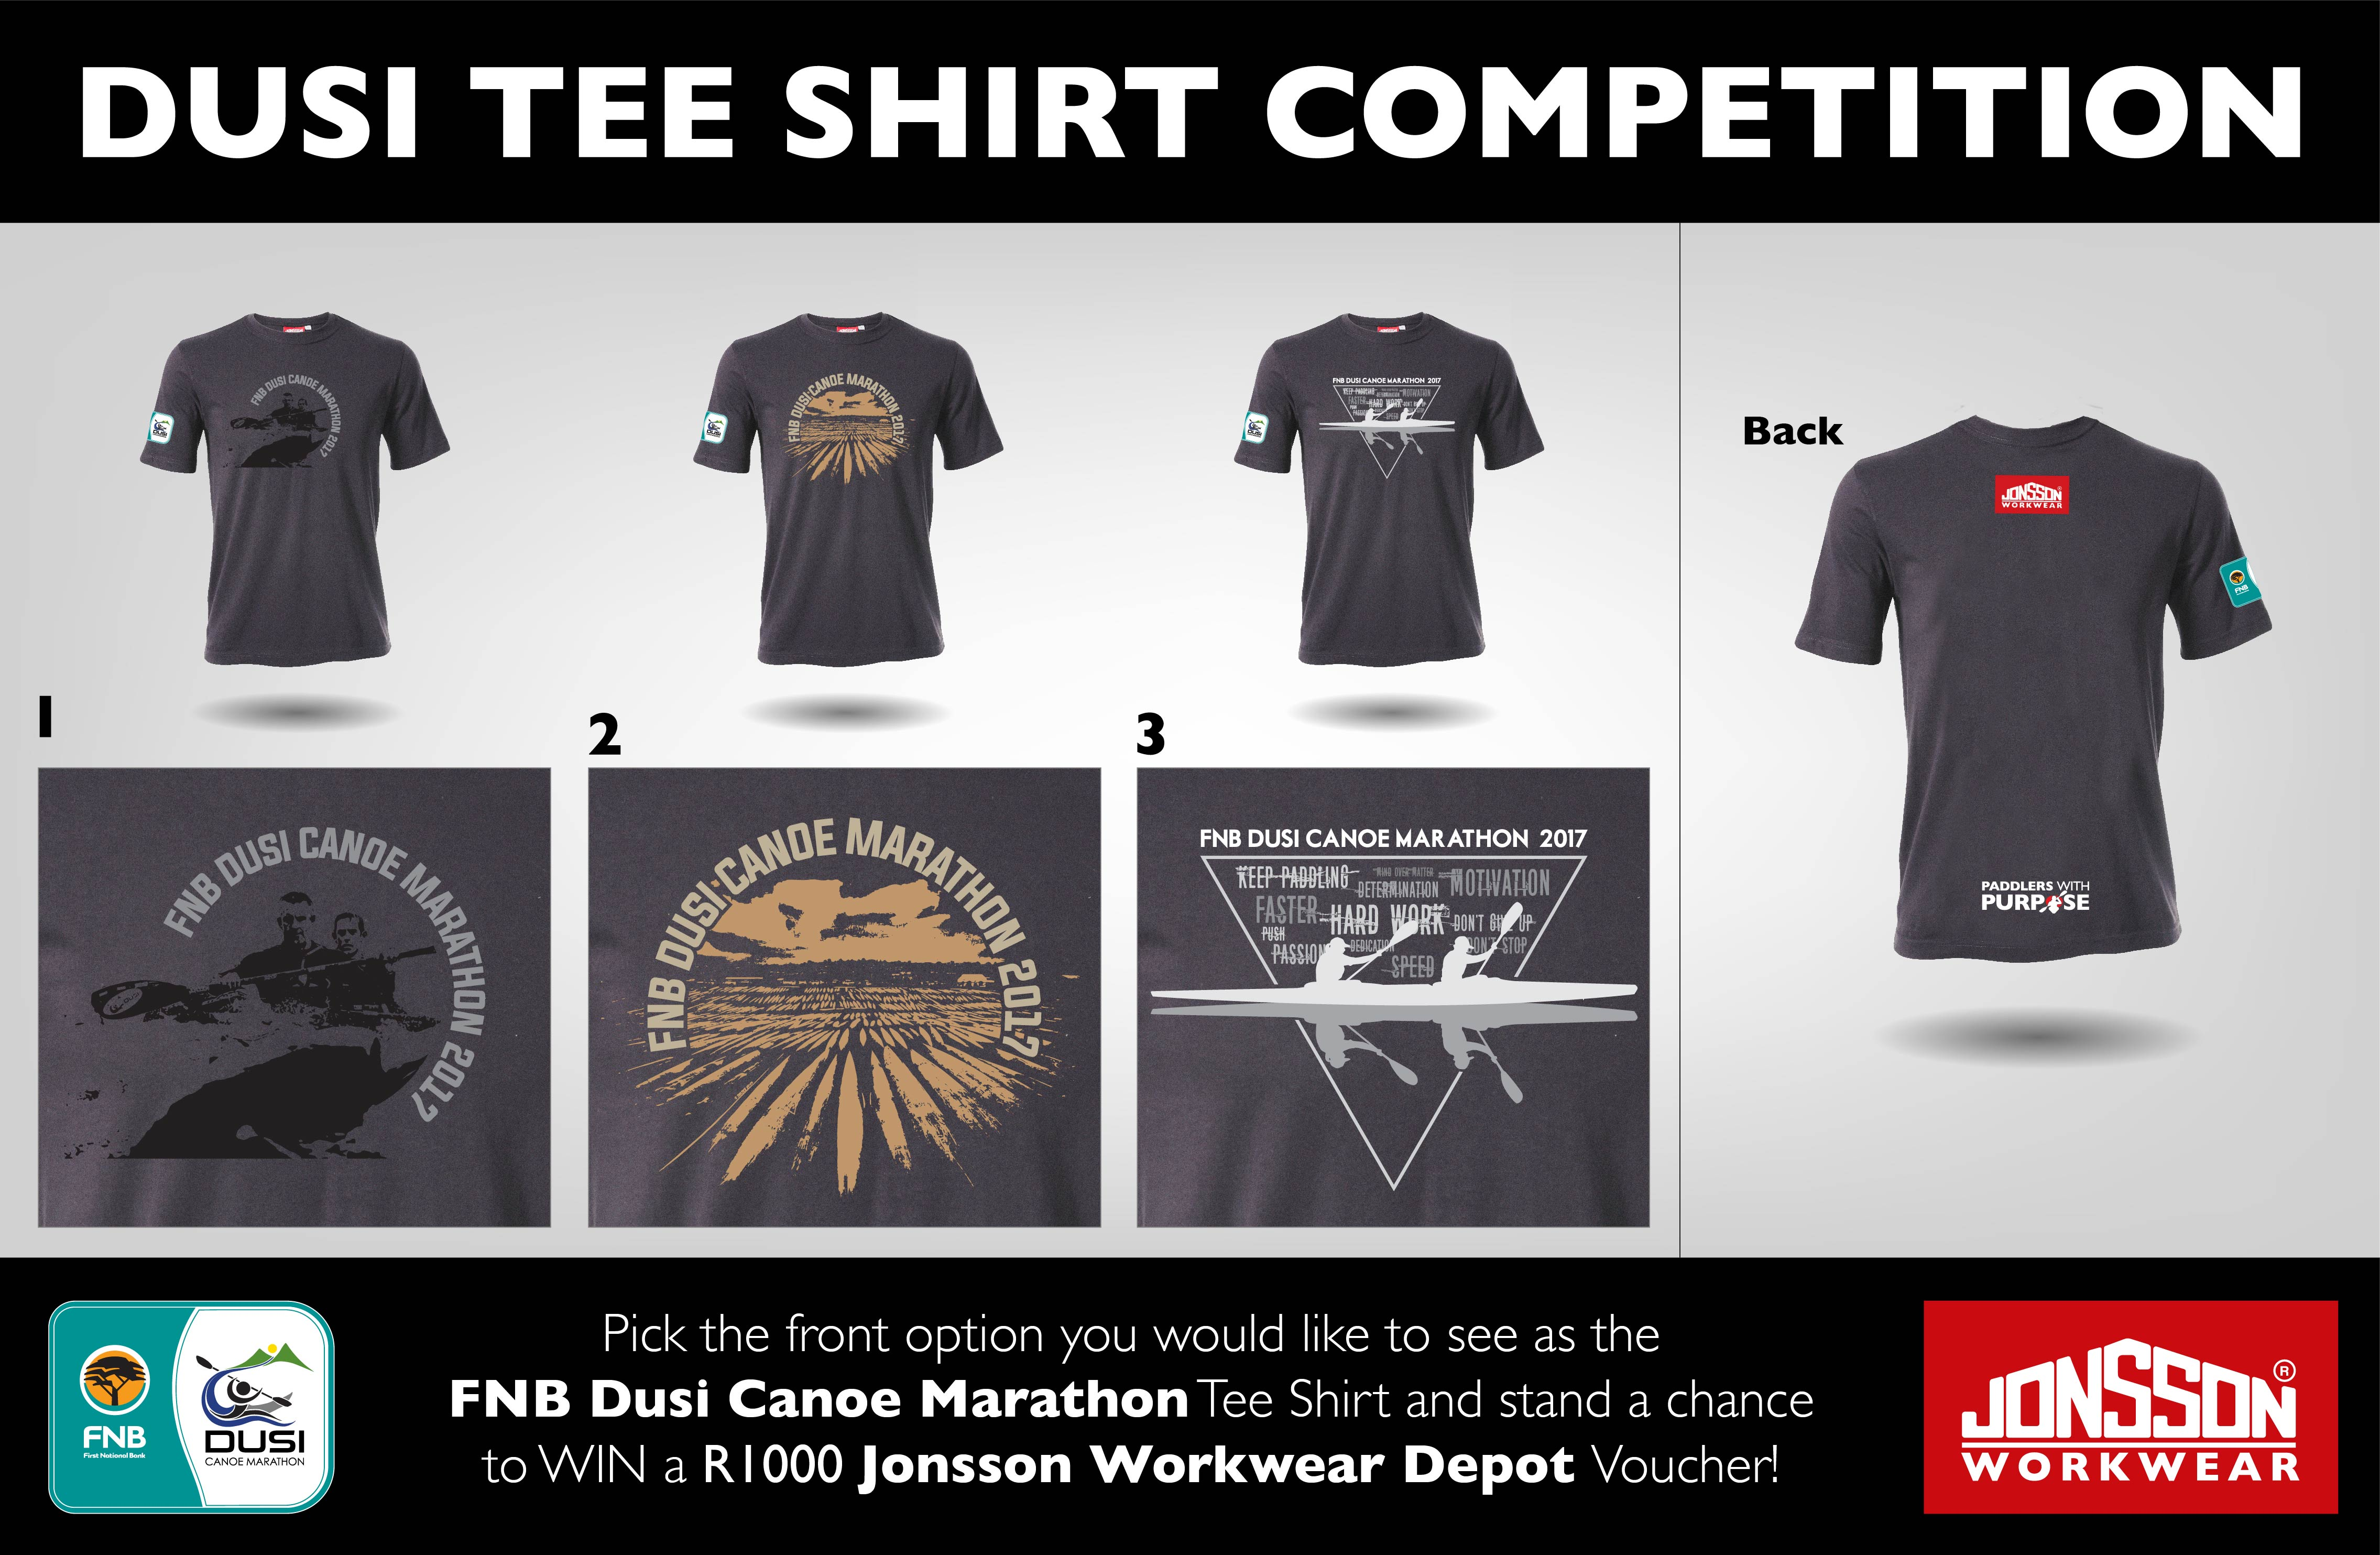 dusi-tee-shirt-facebook-post-03